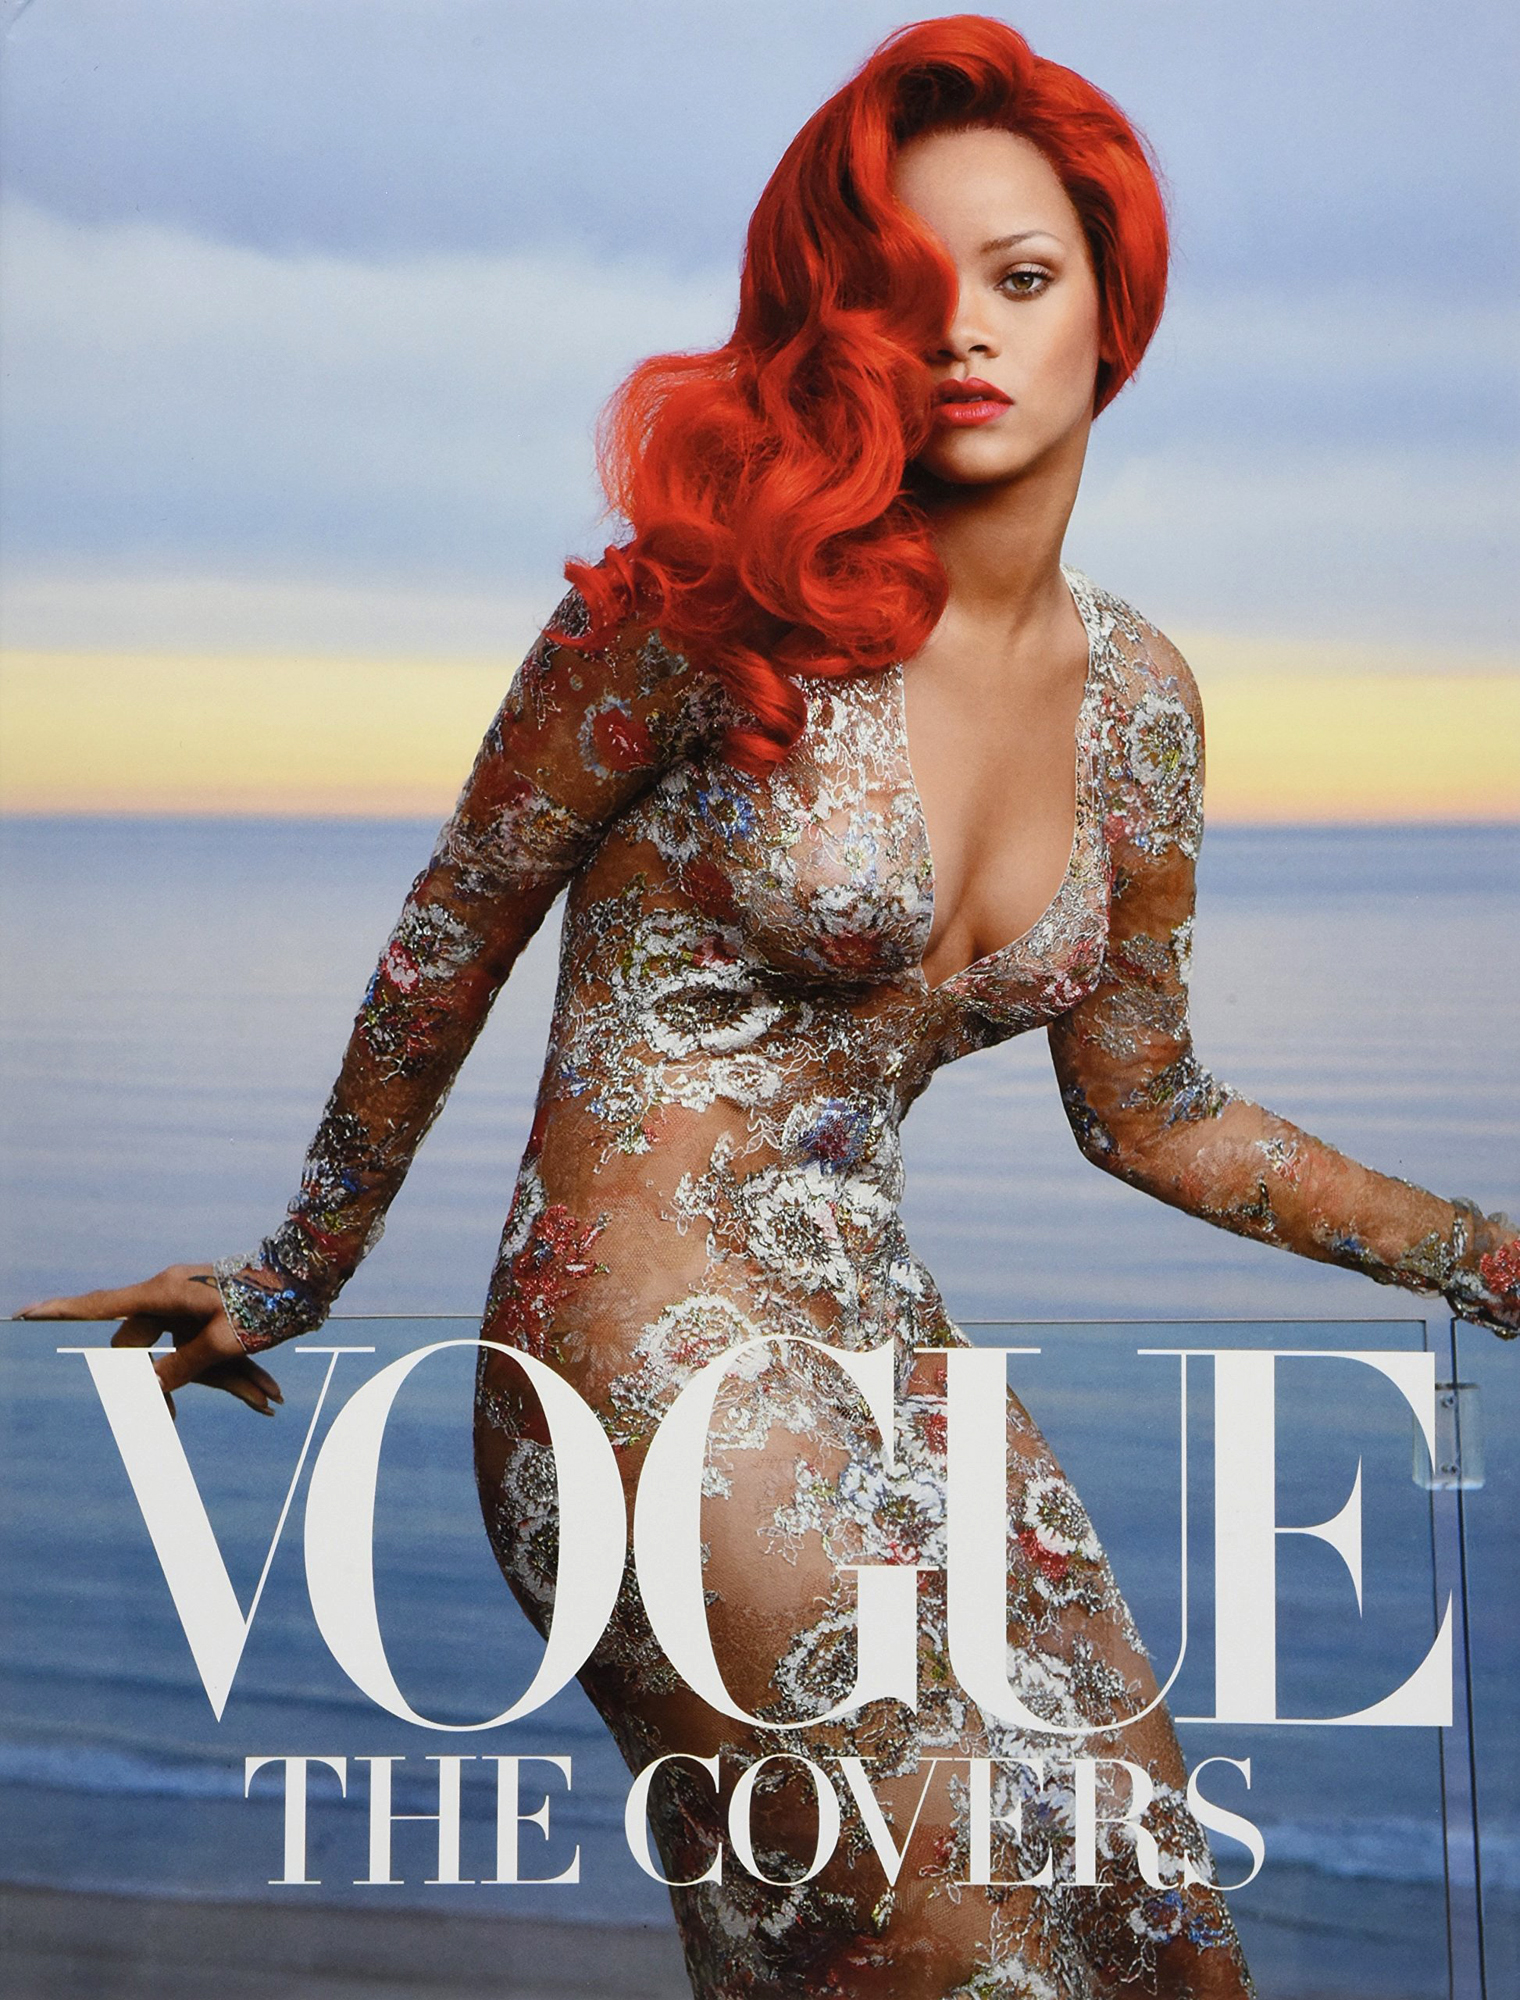 Vogue: The Covers (updated edition) Hardcover – 5 Sep 2017by Dodie Kazanjian